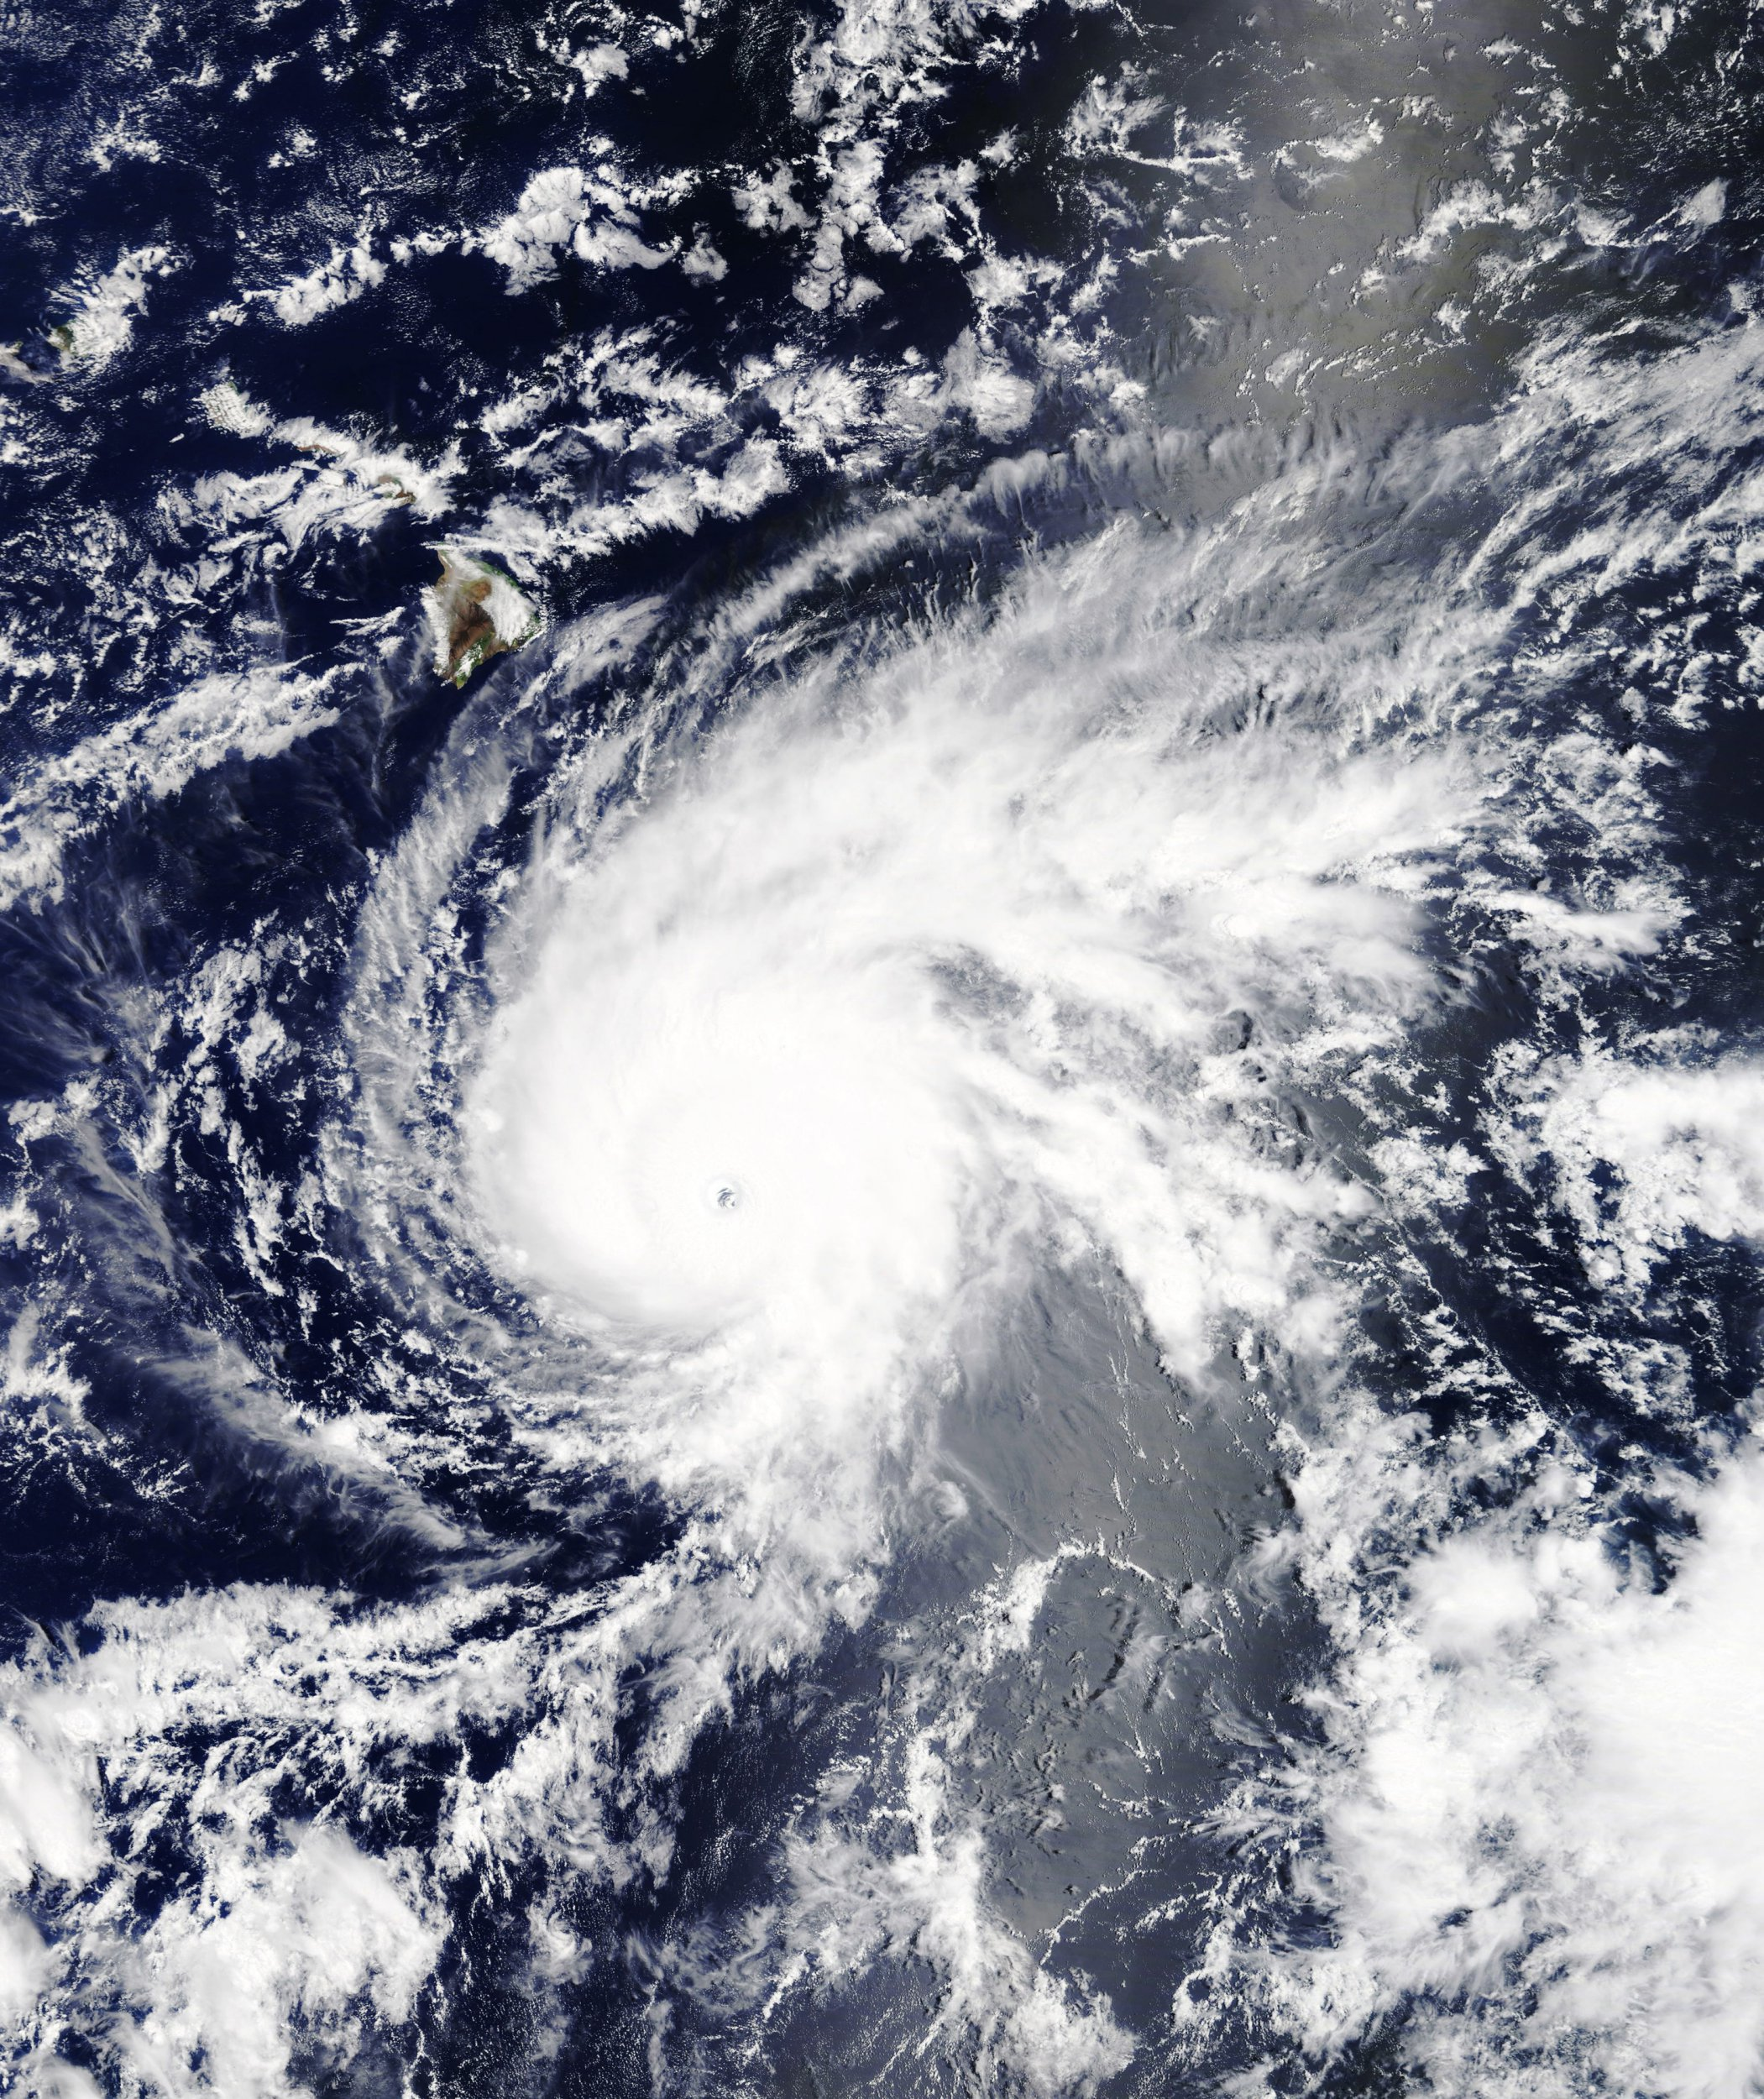 At 10:45 a.m. Hawaii Standard Time on August 21, 2018, the Moderate Resolution Imaging Spectroradiometer (MODIS) on NASA's Terra satellite acquired this natural-color image of Hurricane Lane. Around that time, Lane was a powerful category 4 hurricane with maximum sustained winds of 250 kilometers (155 miles) per hour. The storm's center was 575 miles south-southeast of Honolulu. By that evening, Lane intensified to a category 5 storm. NASA/UPIPHOTOGRAPH BY UPI / Barcroft Images